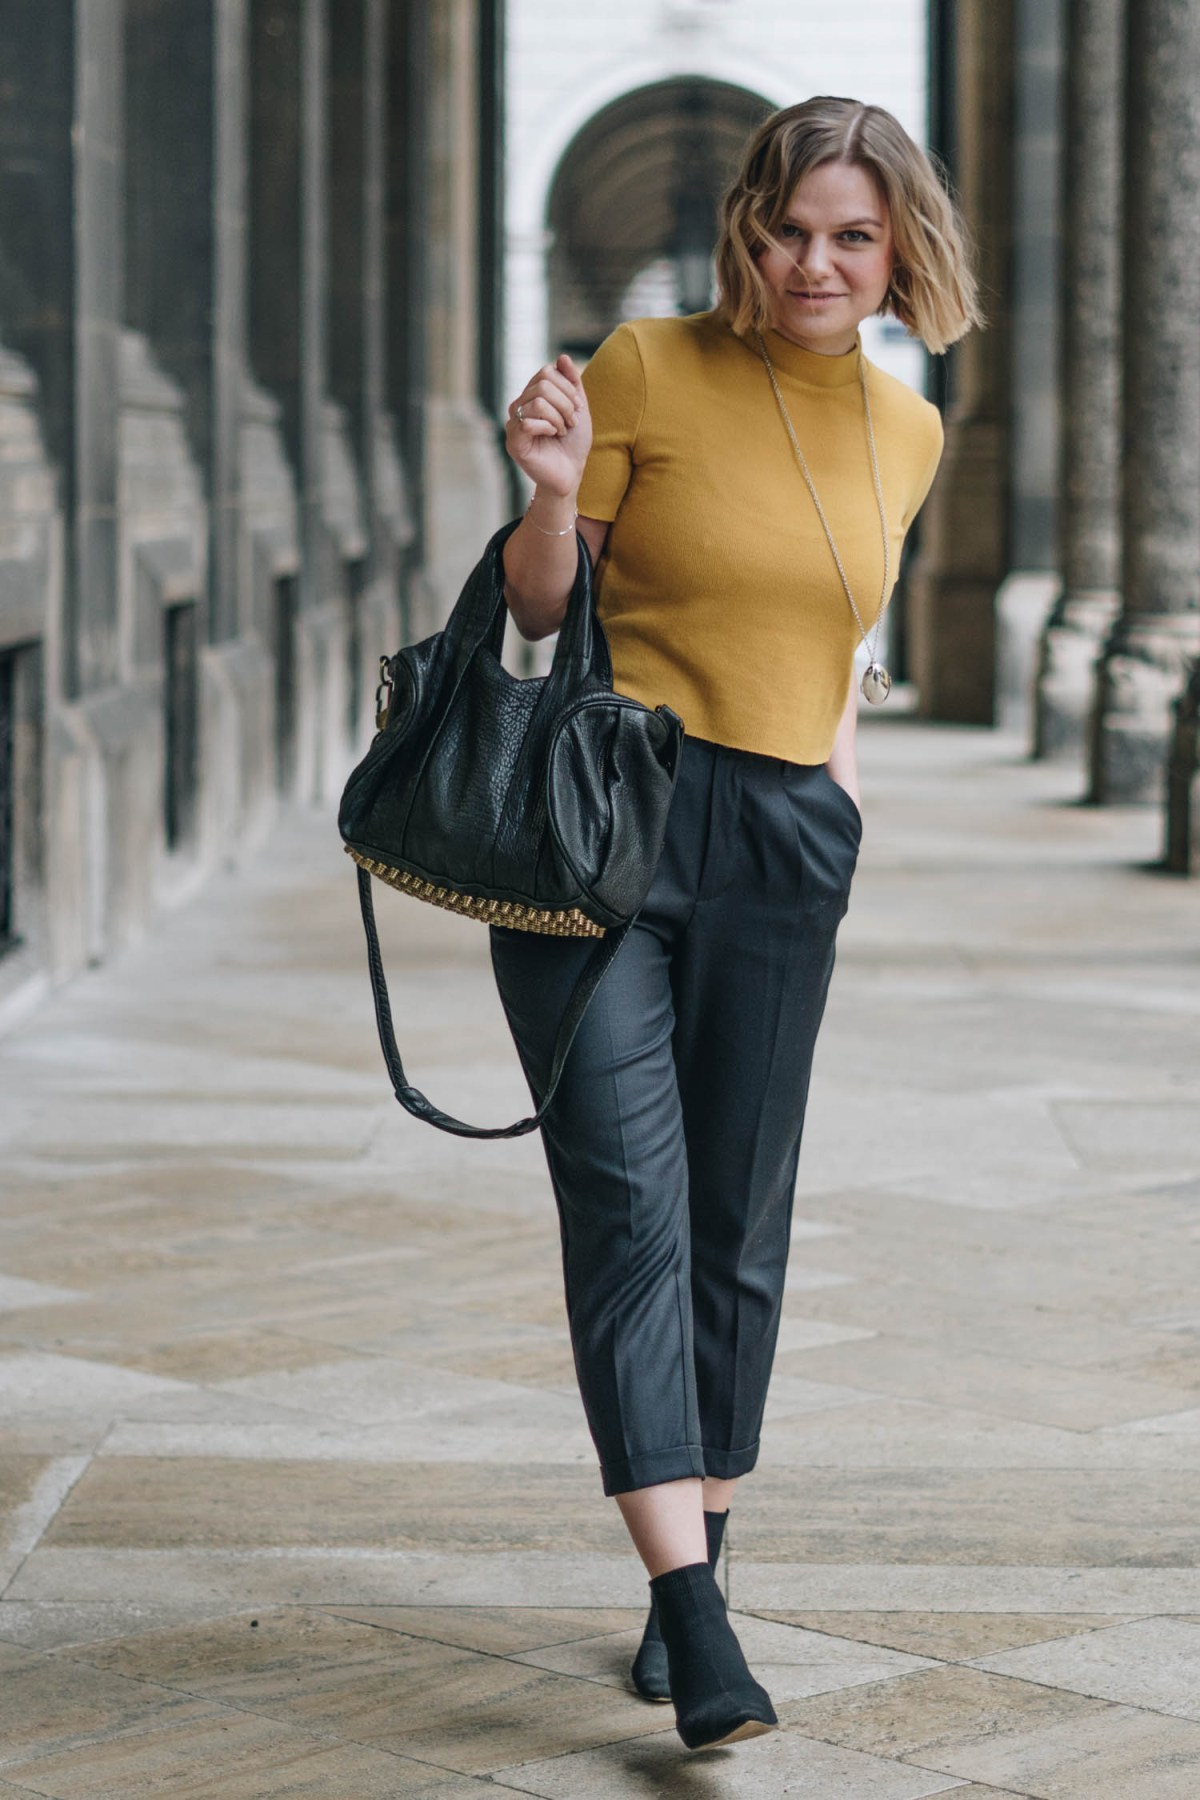 https://i2.wp.com/yellowgirl.at/wp-content/uploads/2018/02/yellowgirl_Valentinstagsoutfit-Stoffhose-gelbes-croptop-alexander-Wang-Rocco-Tasche-Cloe-Medalion-stradivarius-sockshoes-3-von-9.jpg?fit=1200%2C1800&ssl=1